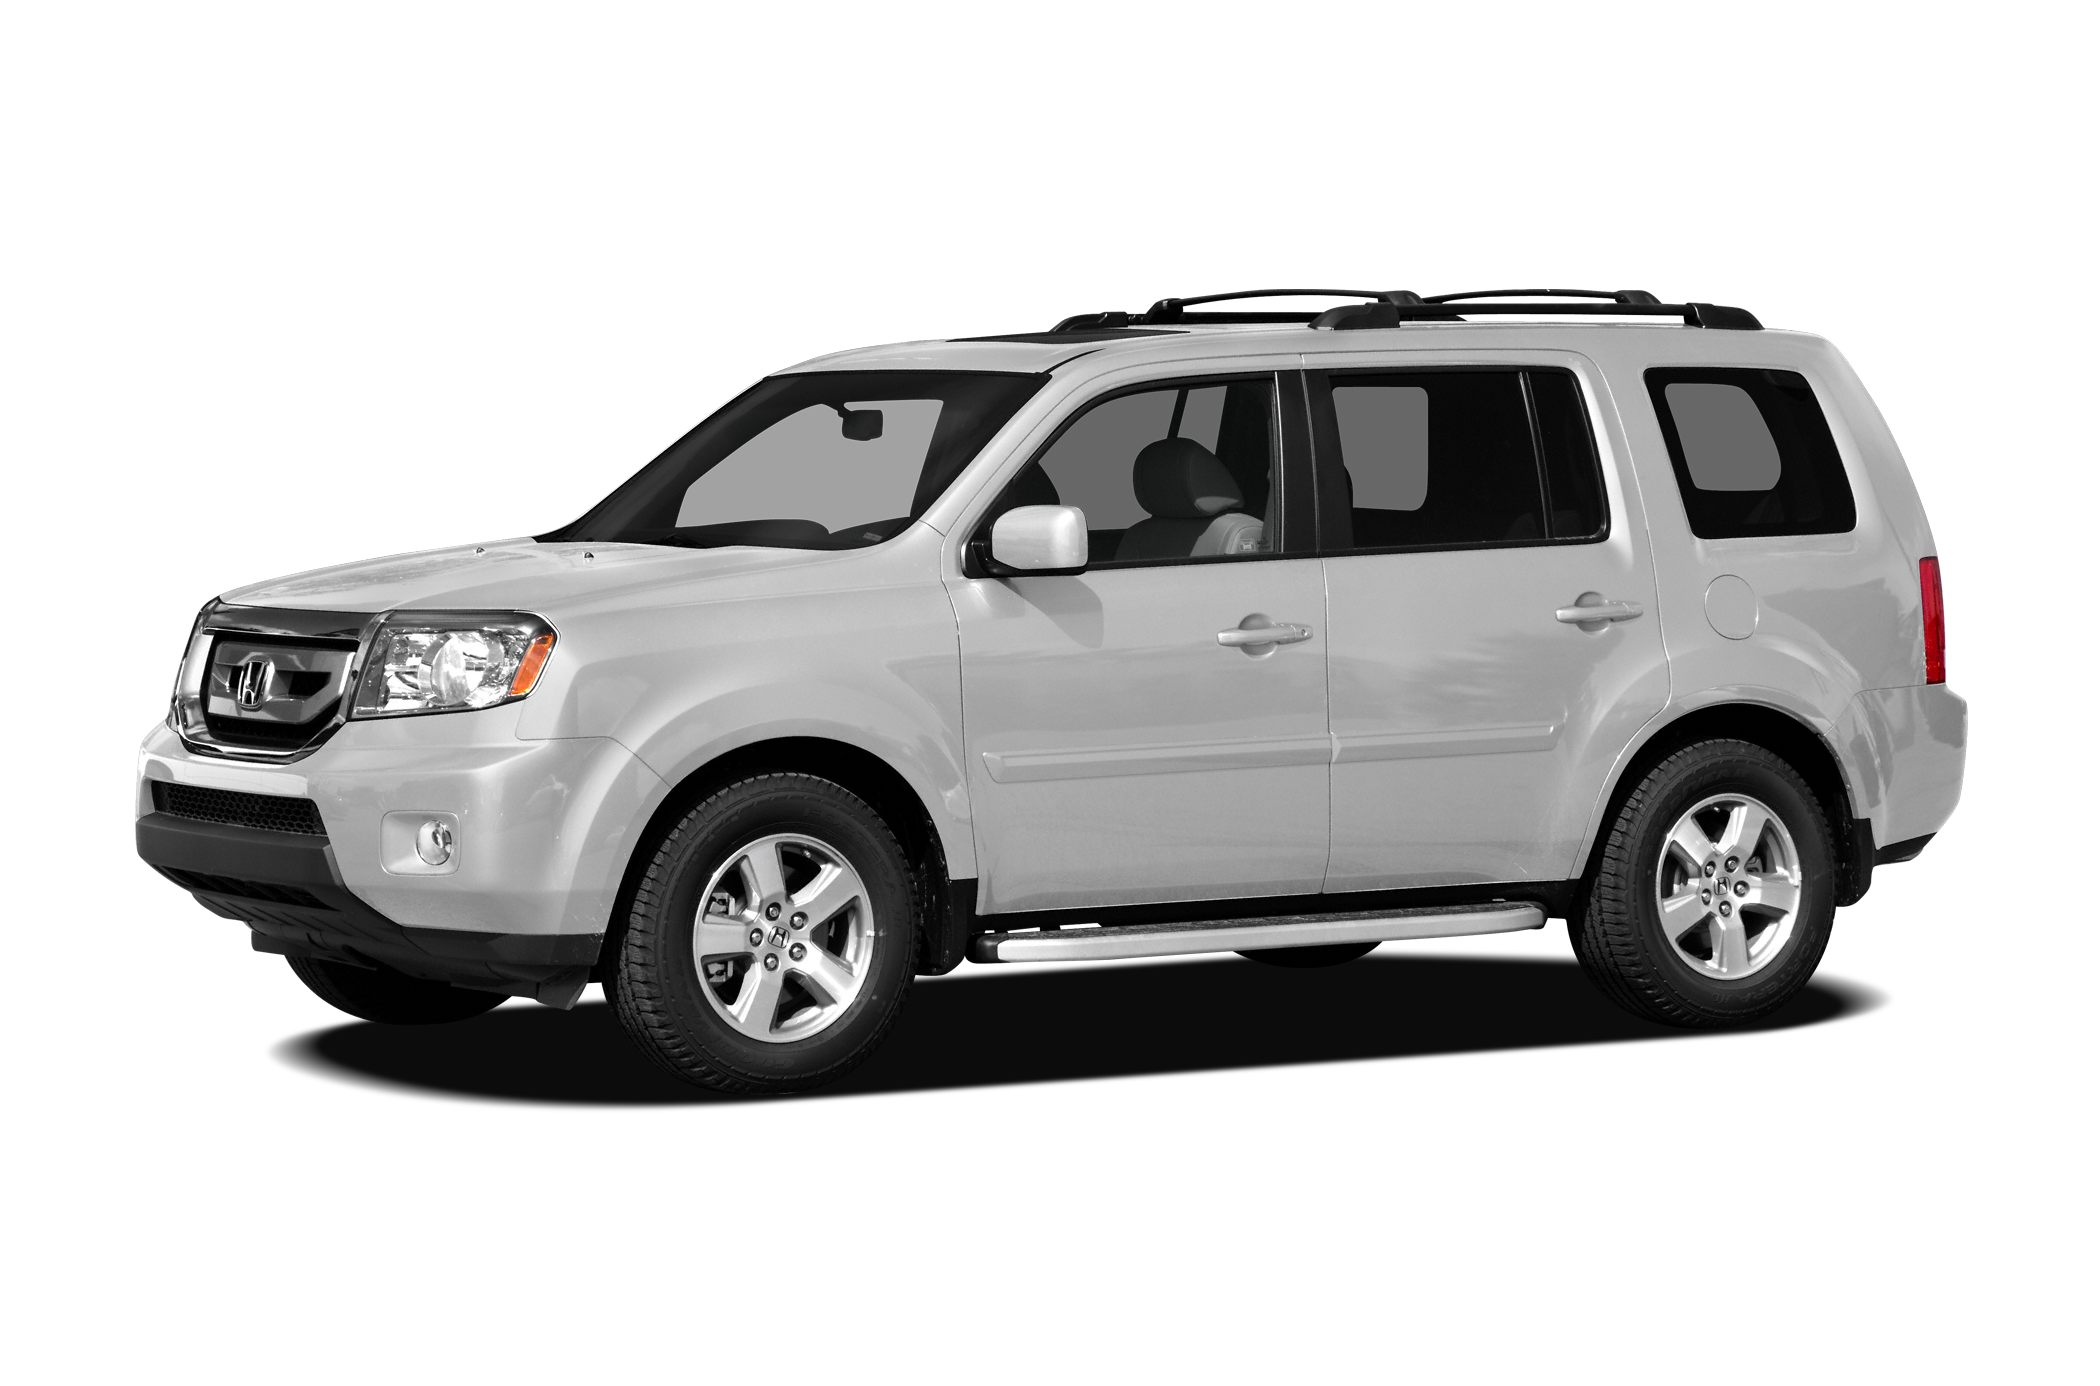 2011 Honda Pilot EX-L SUV for sale in Elmwood Park for $20,995 with 62,915 miles